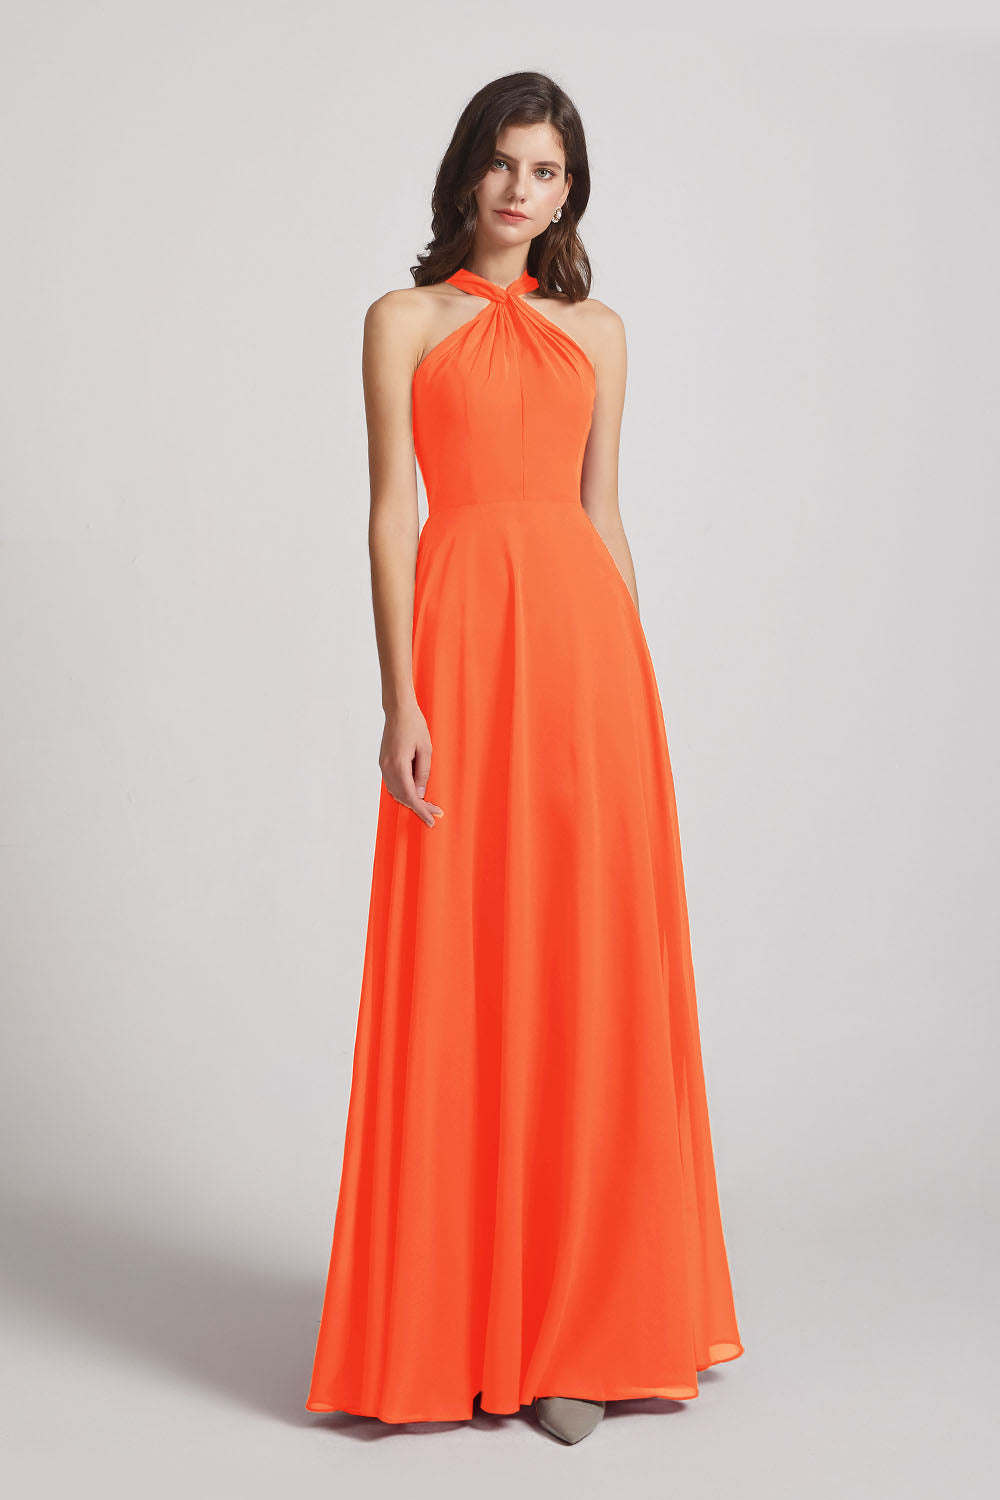 Alfa Bridal Tangerine Tango Floor Length Chiffon Bridesmaid Dresses with Criss Cross Neckline (AF0113)